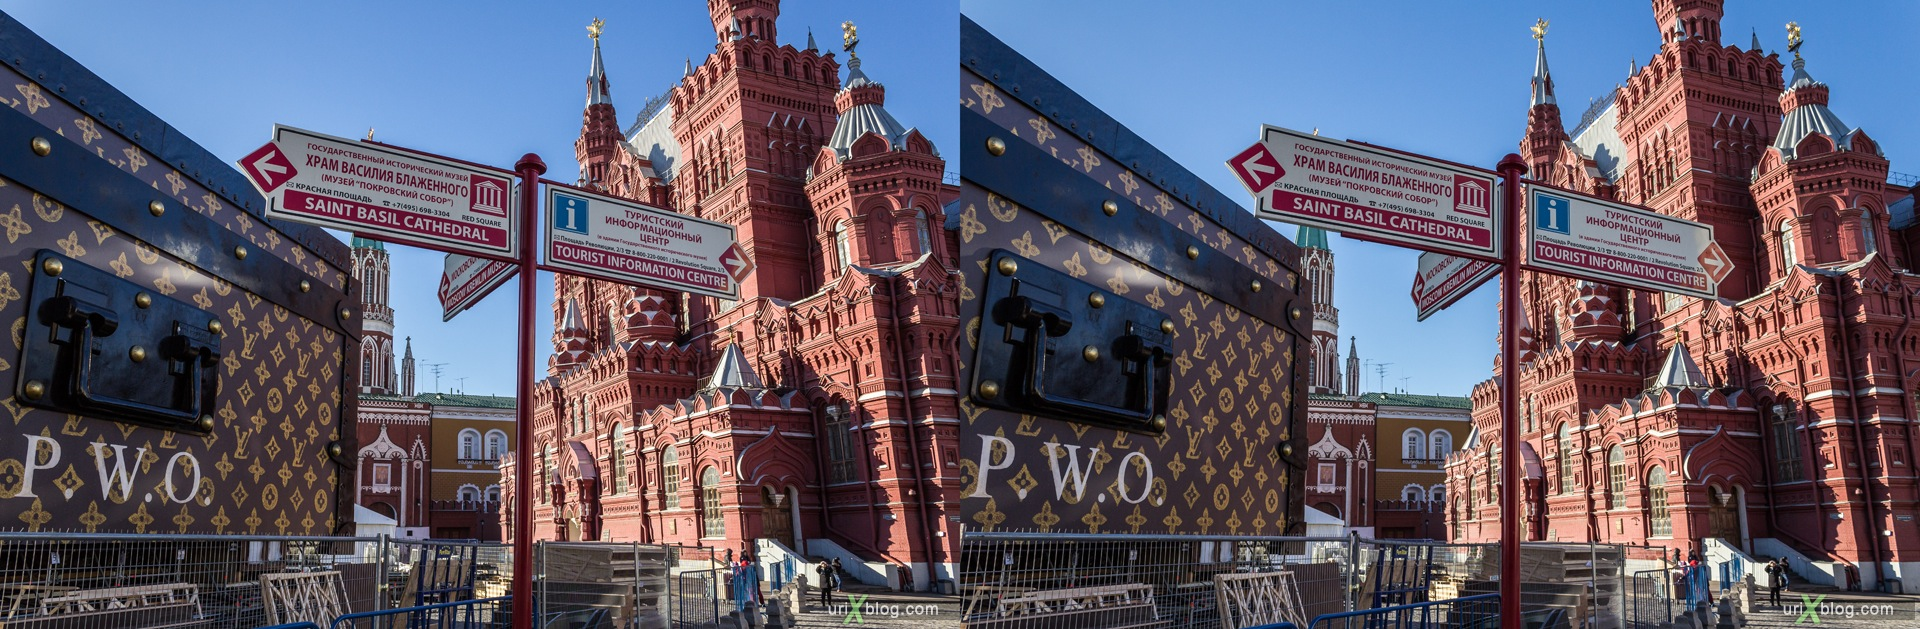 2013, Moscow, Russia, Red Square, street, new pedestrian zone, 3D, stereo pair, cross-eyed, crossview, cross view stereo pair, stereoscopic